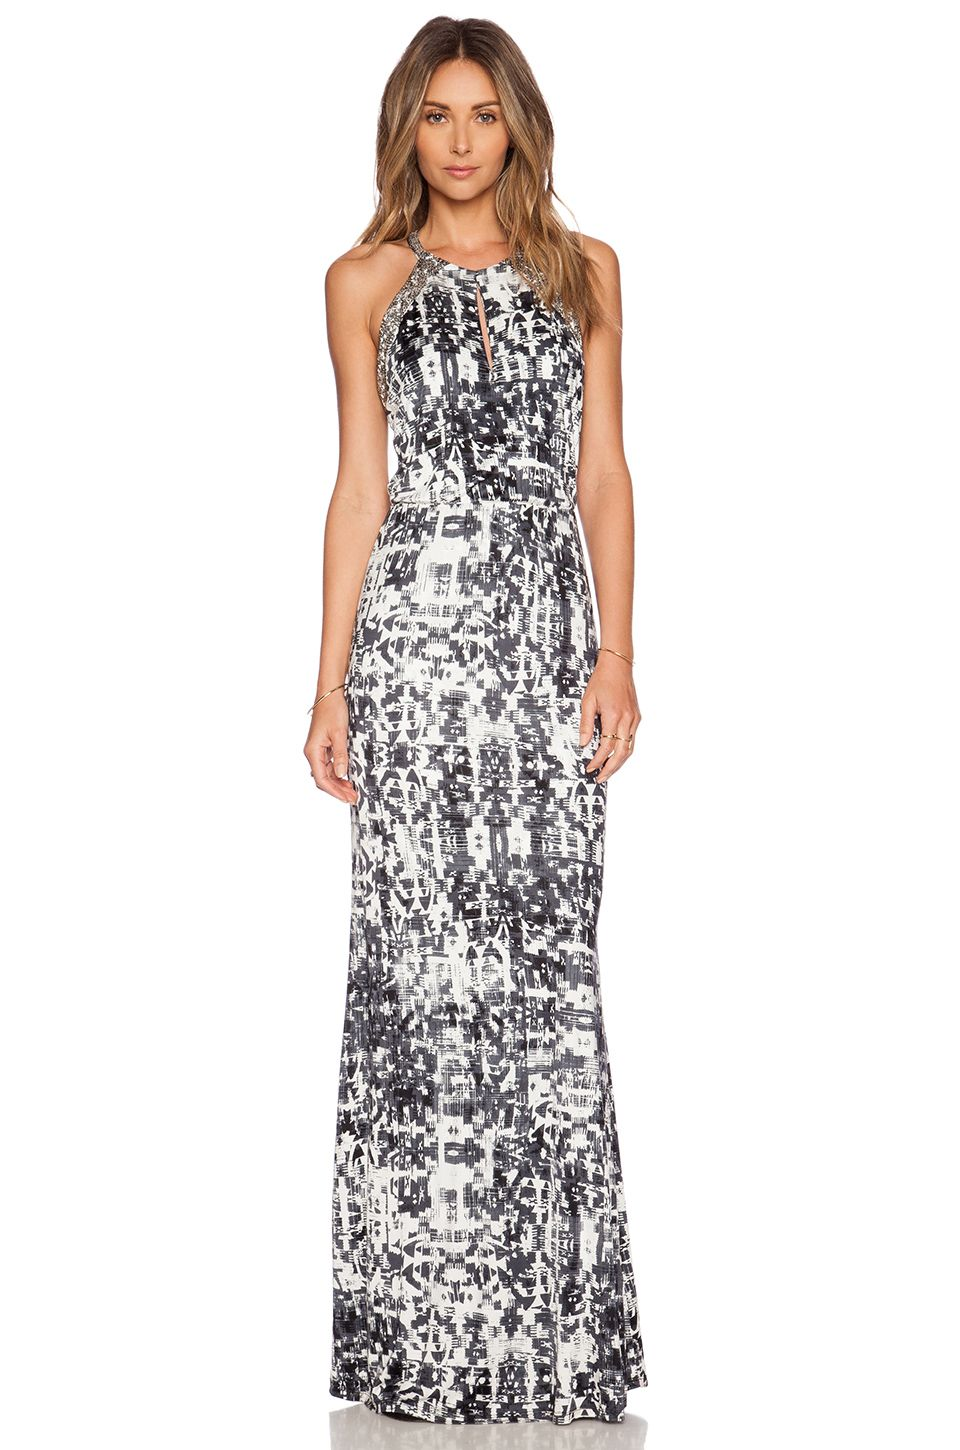 Parker lita embellished maxi dress in gazette black u white